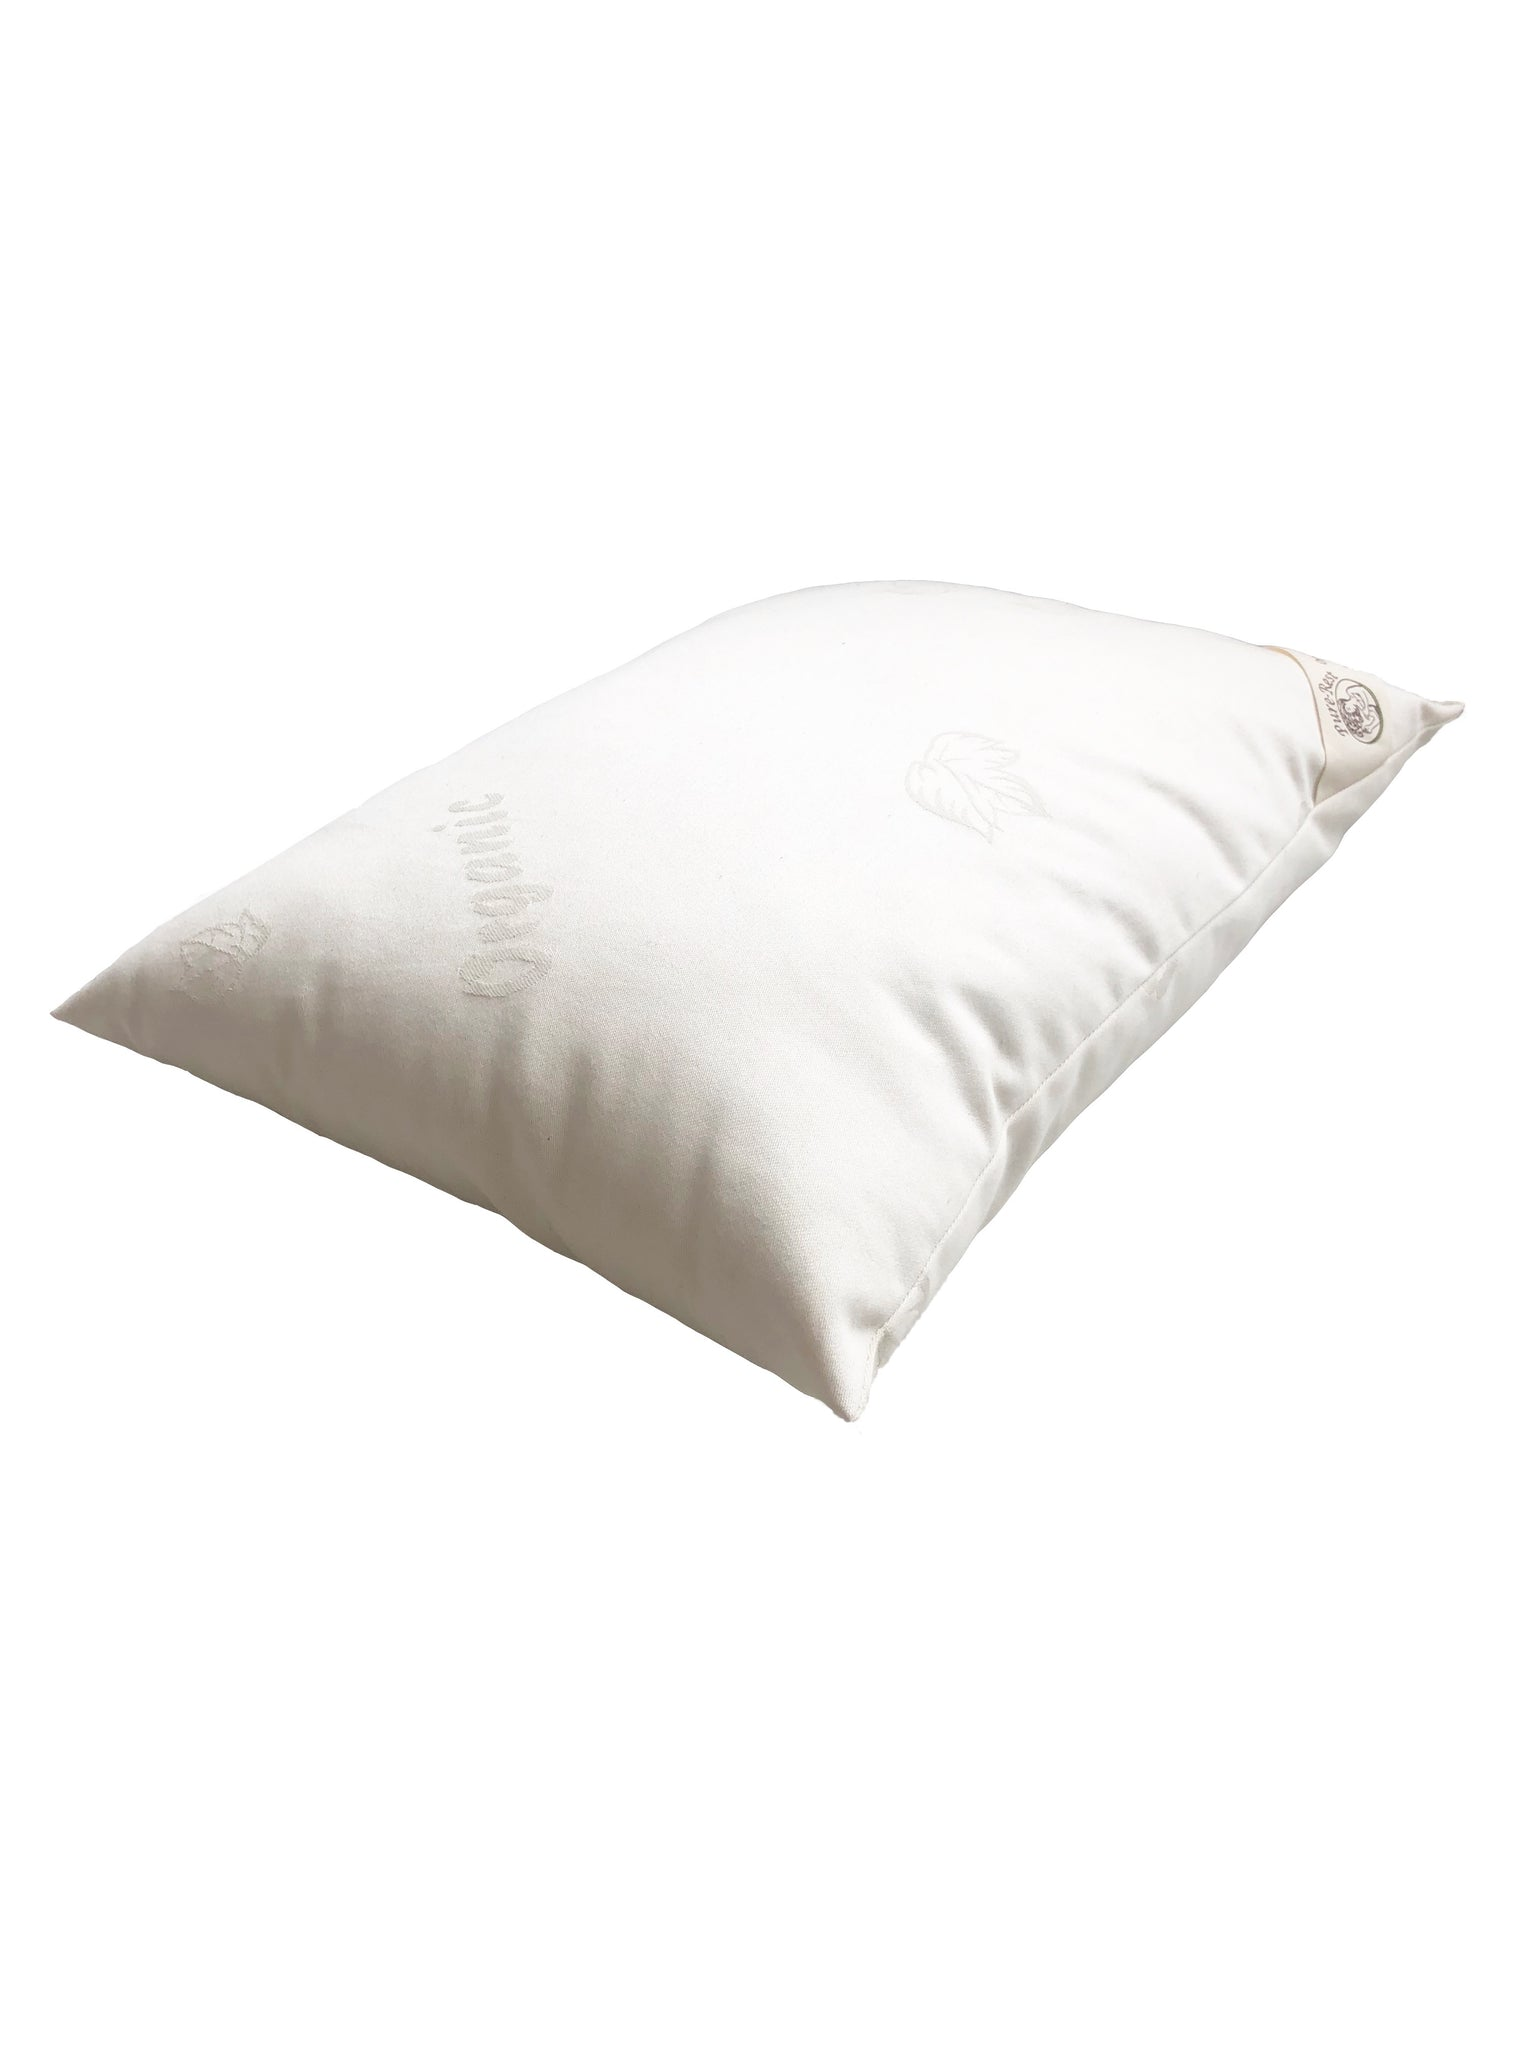 Kapok Filled Organic Cotton Pillow